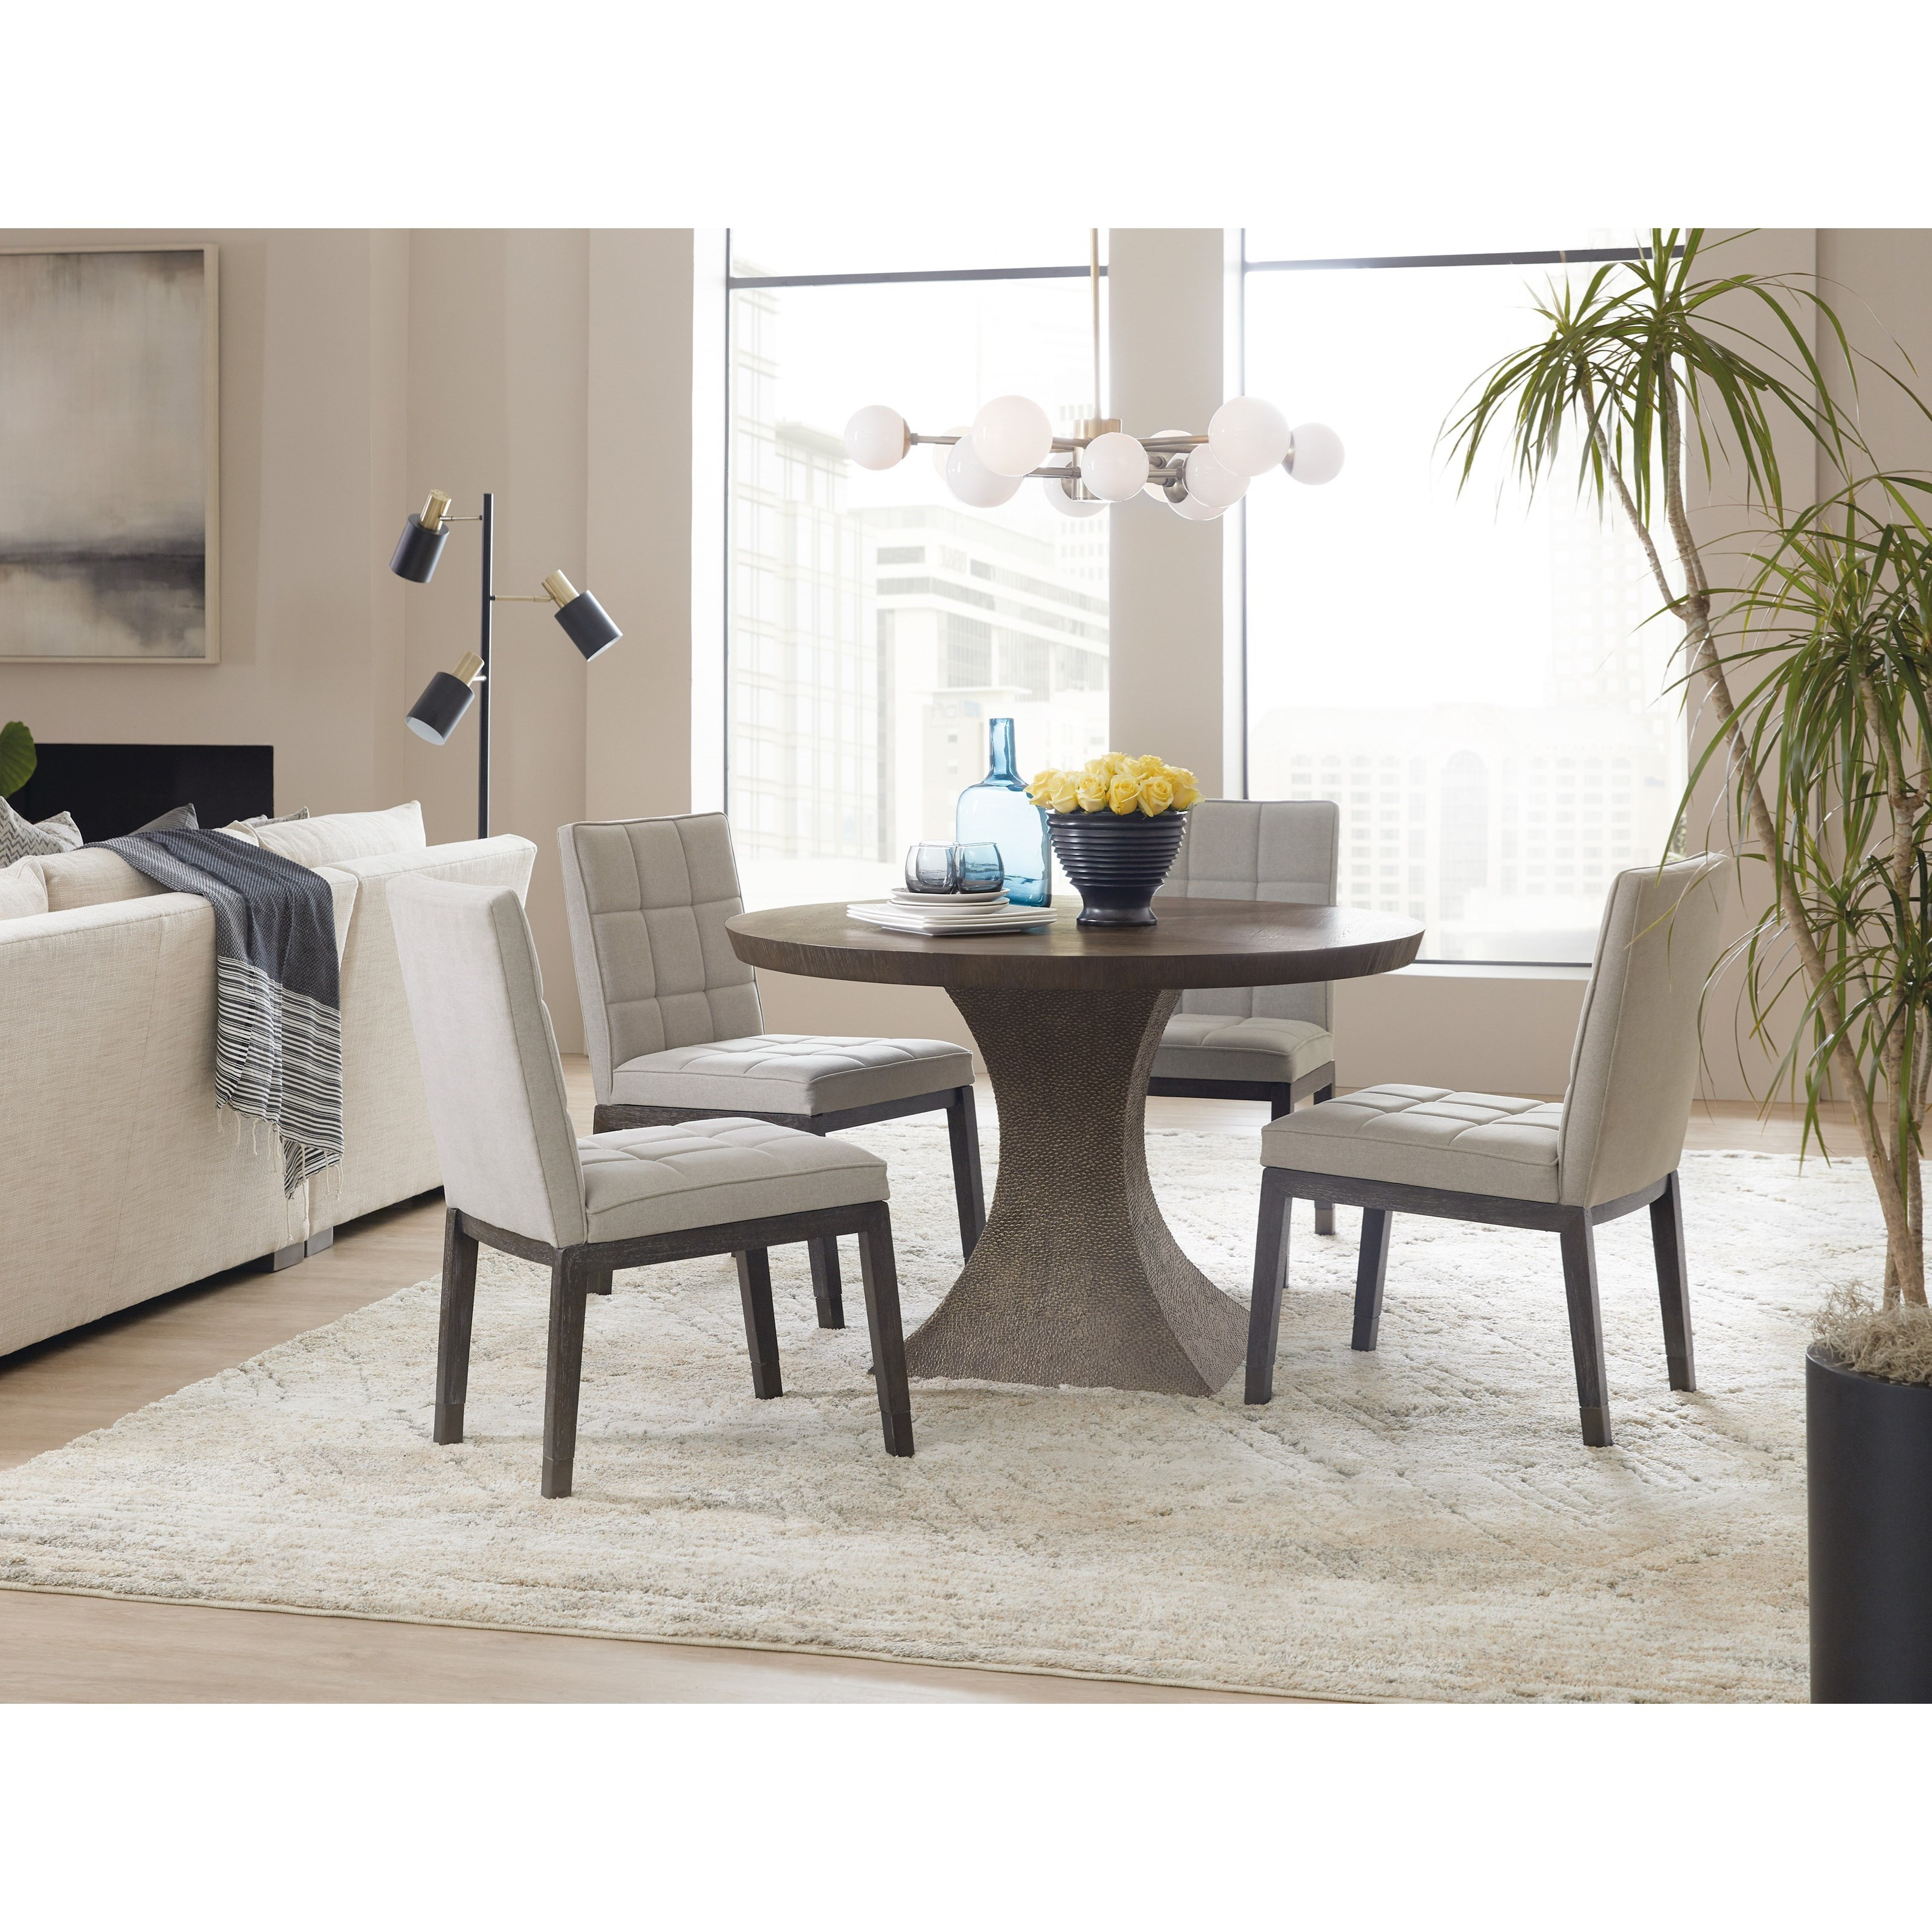 Cool Aventura Furniture Shred 415 Chicago Andrewgaddart Wooden Chair Designs For Living Room Andrewgaddartcom